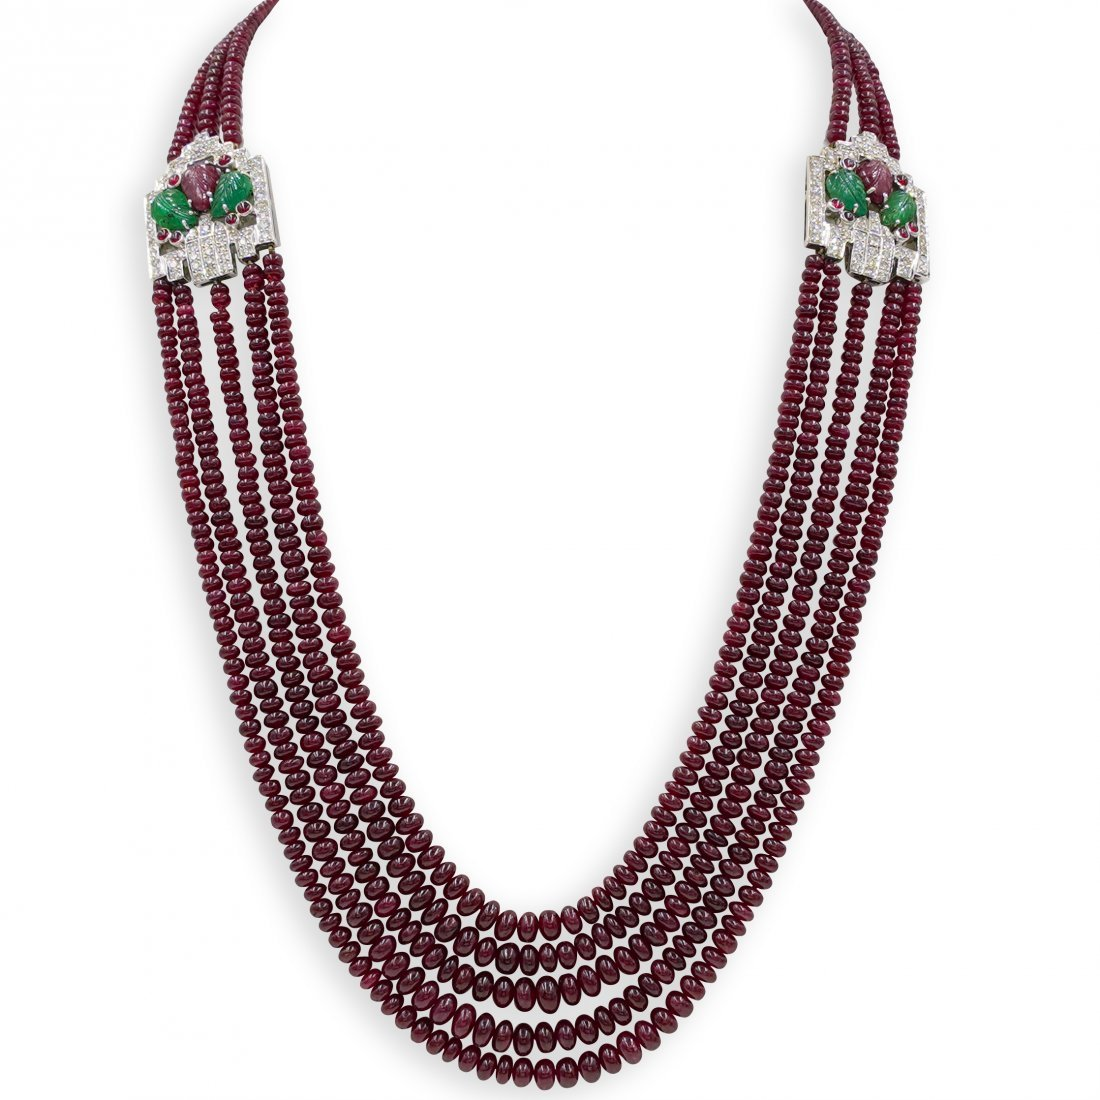 Cartier Style Ruby, Emerald and Diamond Necklace